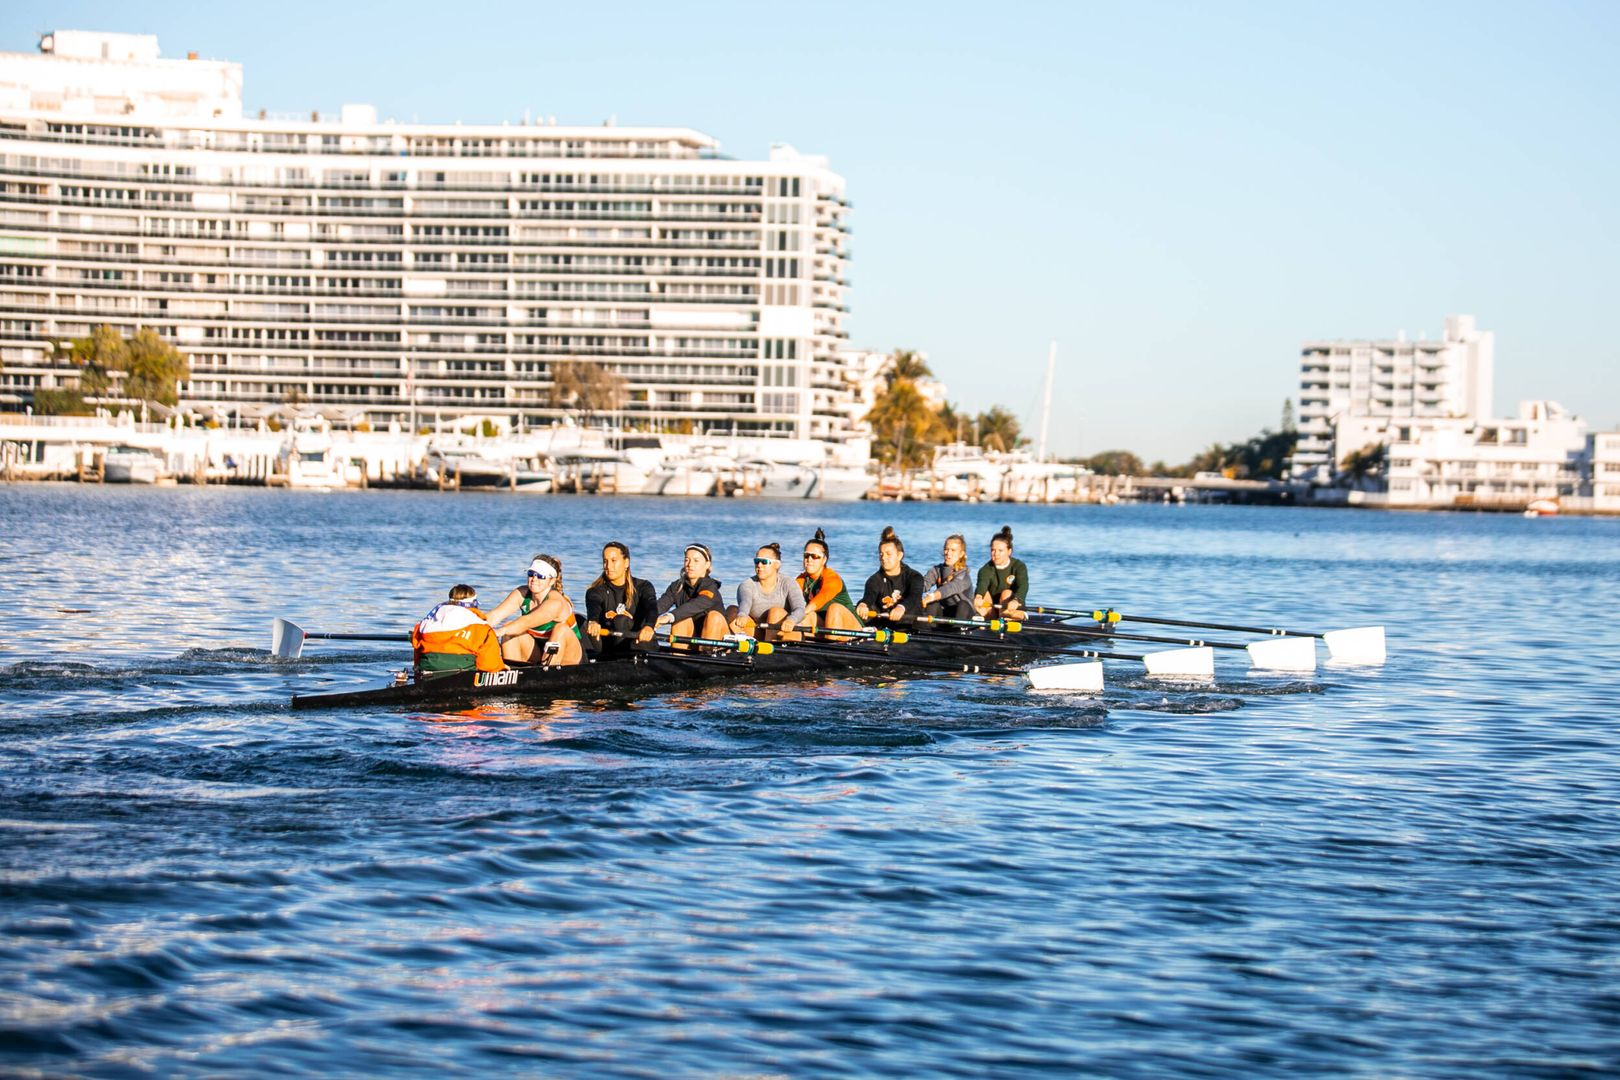 Canes Announce 2021 Rowing Schedule